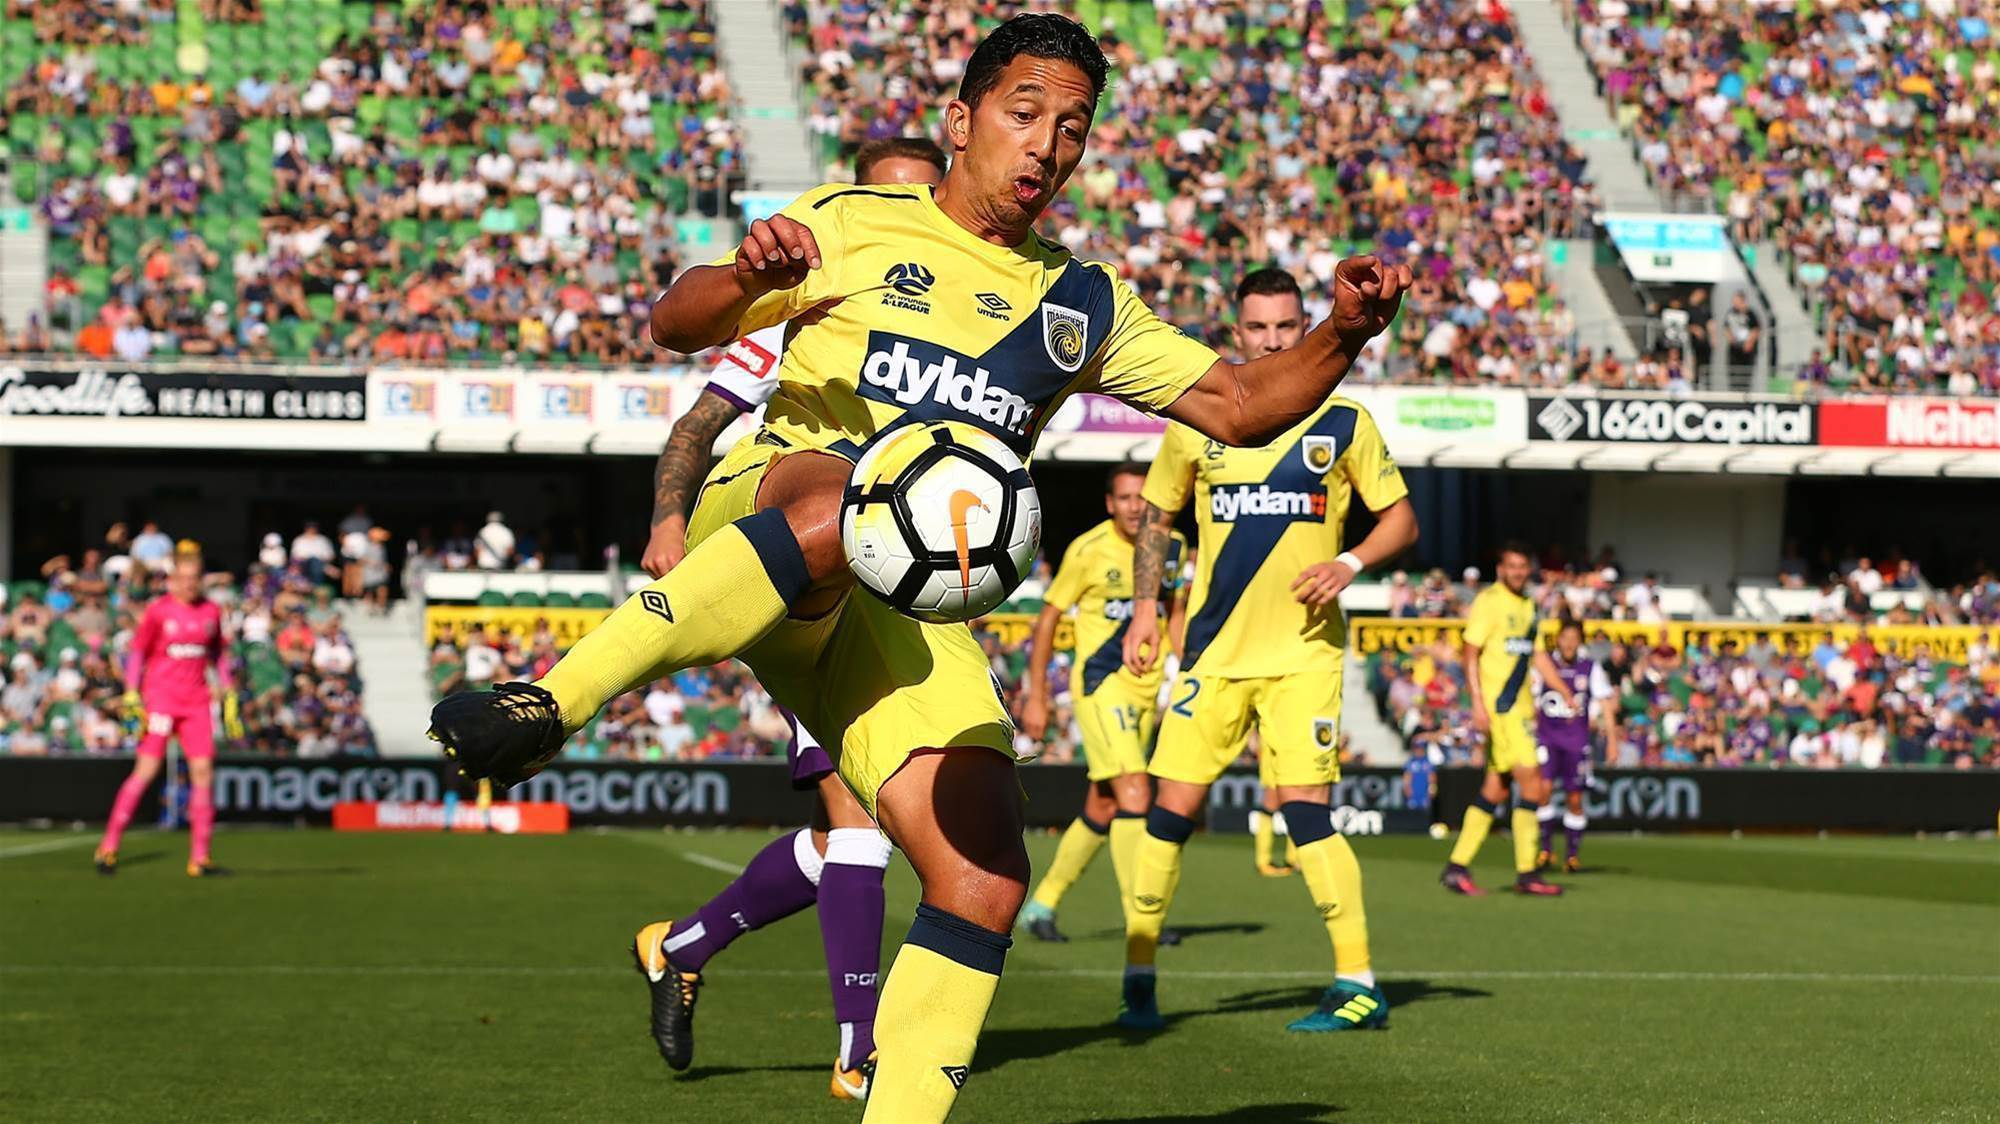 Hiariej on the fighting, physical A-League